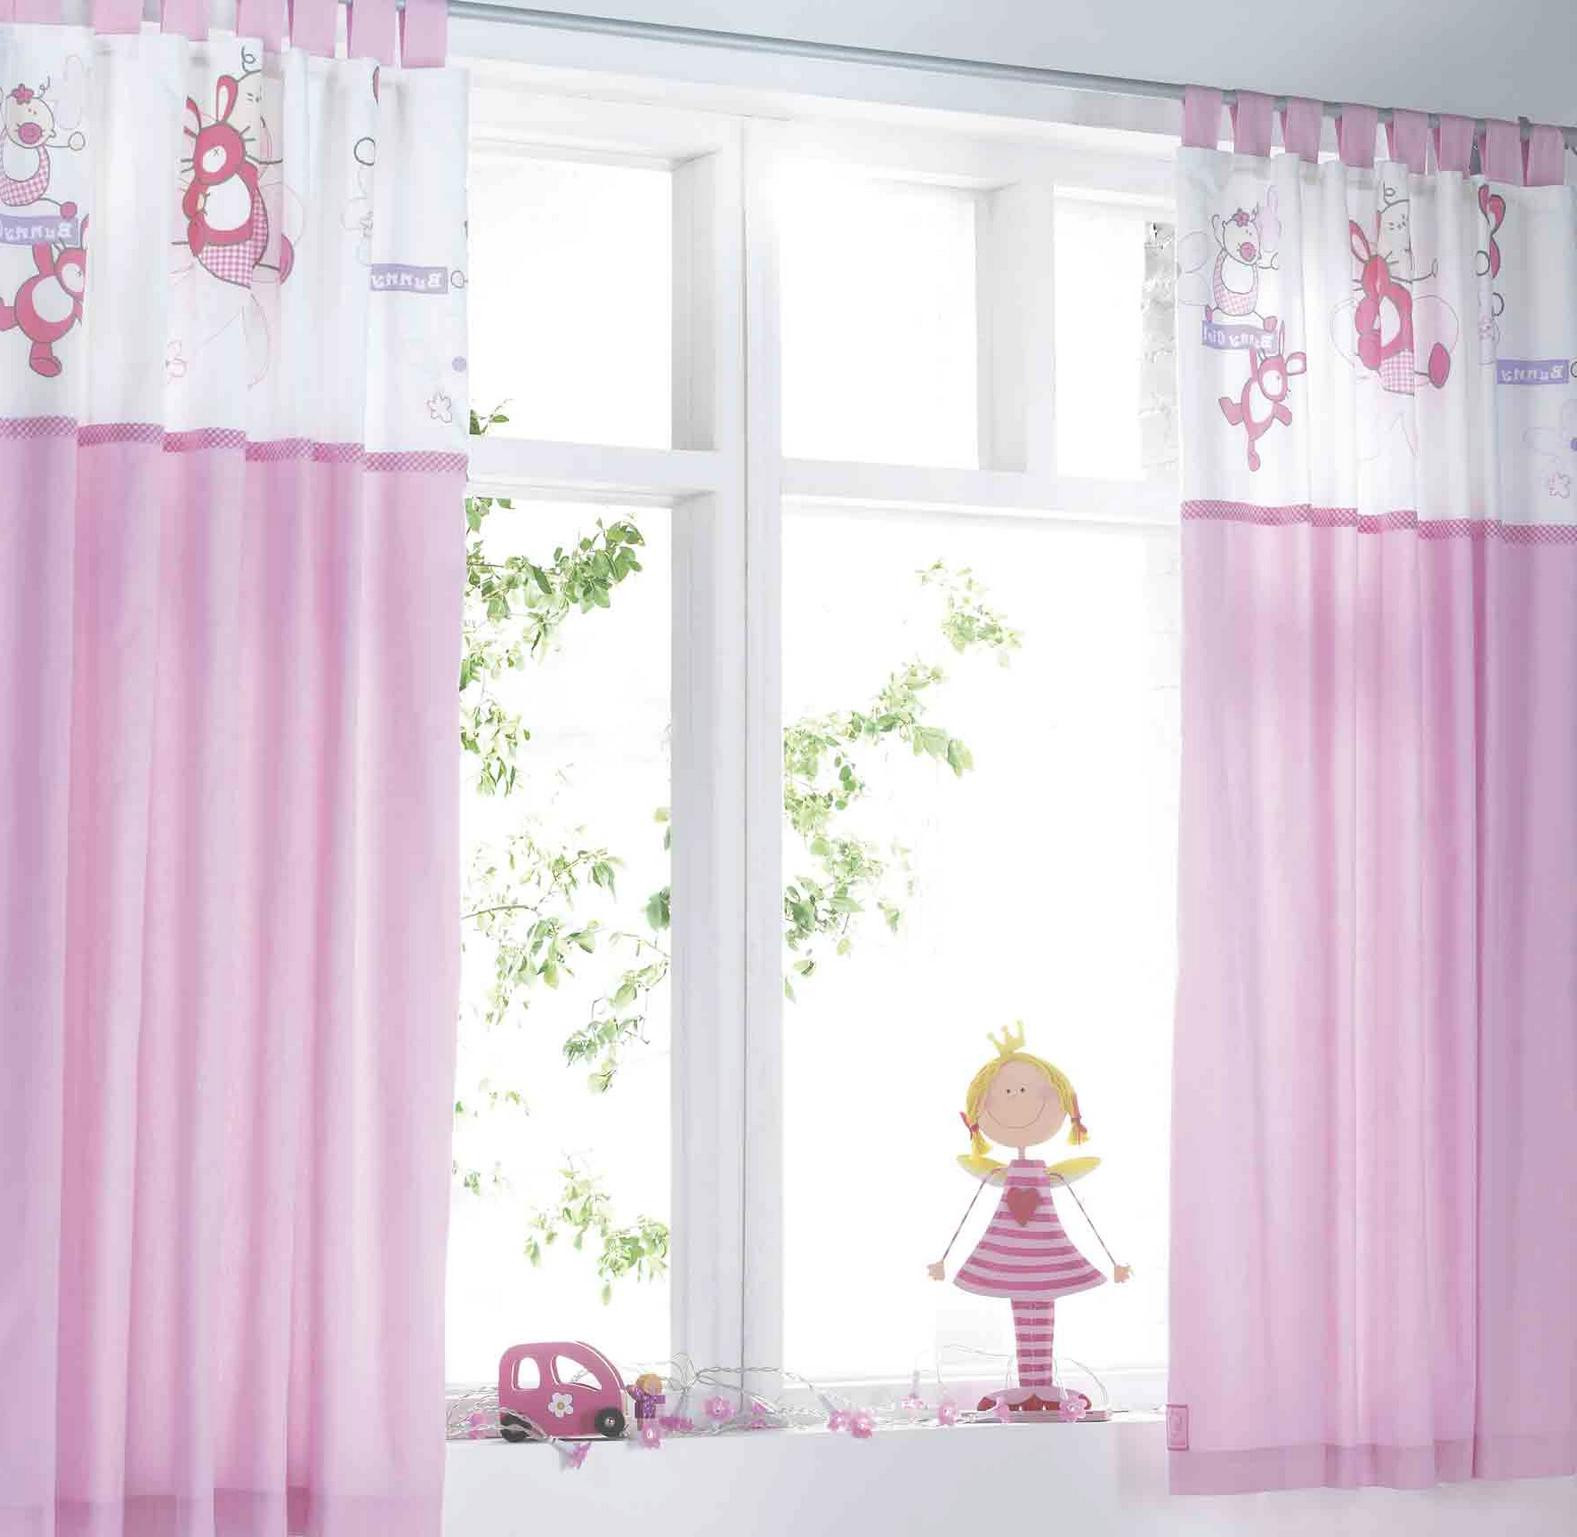 Best ideas about Kid Bedroom Curtain . Save or Pin Cute Window Treatment Kids Bedroom Curtains Now.